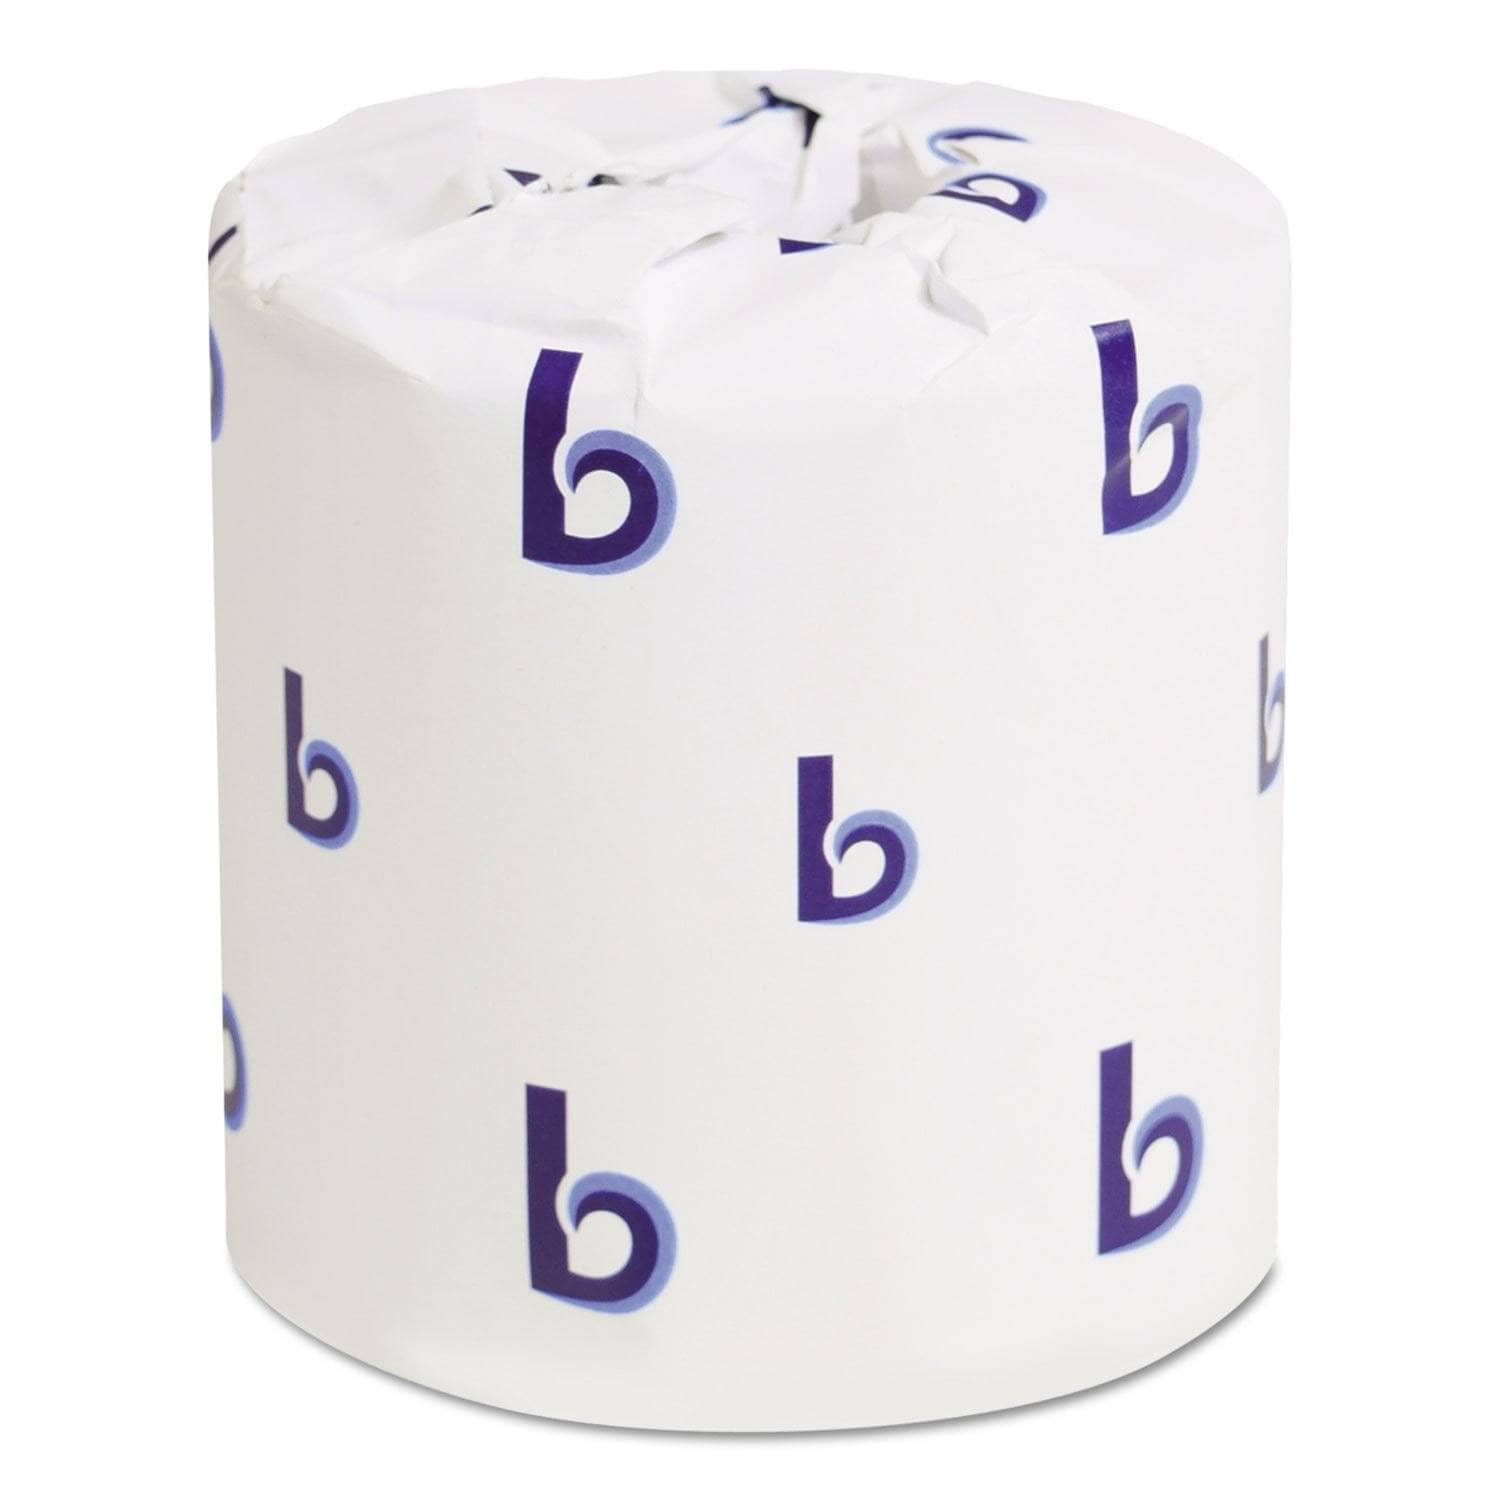 Boardwalk Bathroom Tissue, Standard, Septic Safe, 2-Ply, White, 4 X 3, 500 Sheets/Roll, 96/Carton - BWK6145 - TotalRestroom.com